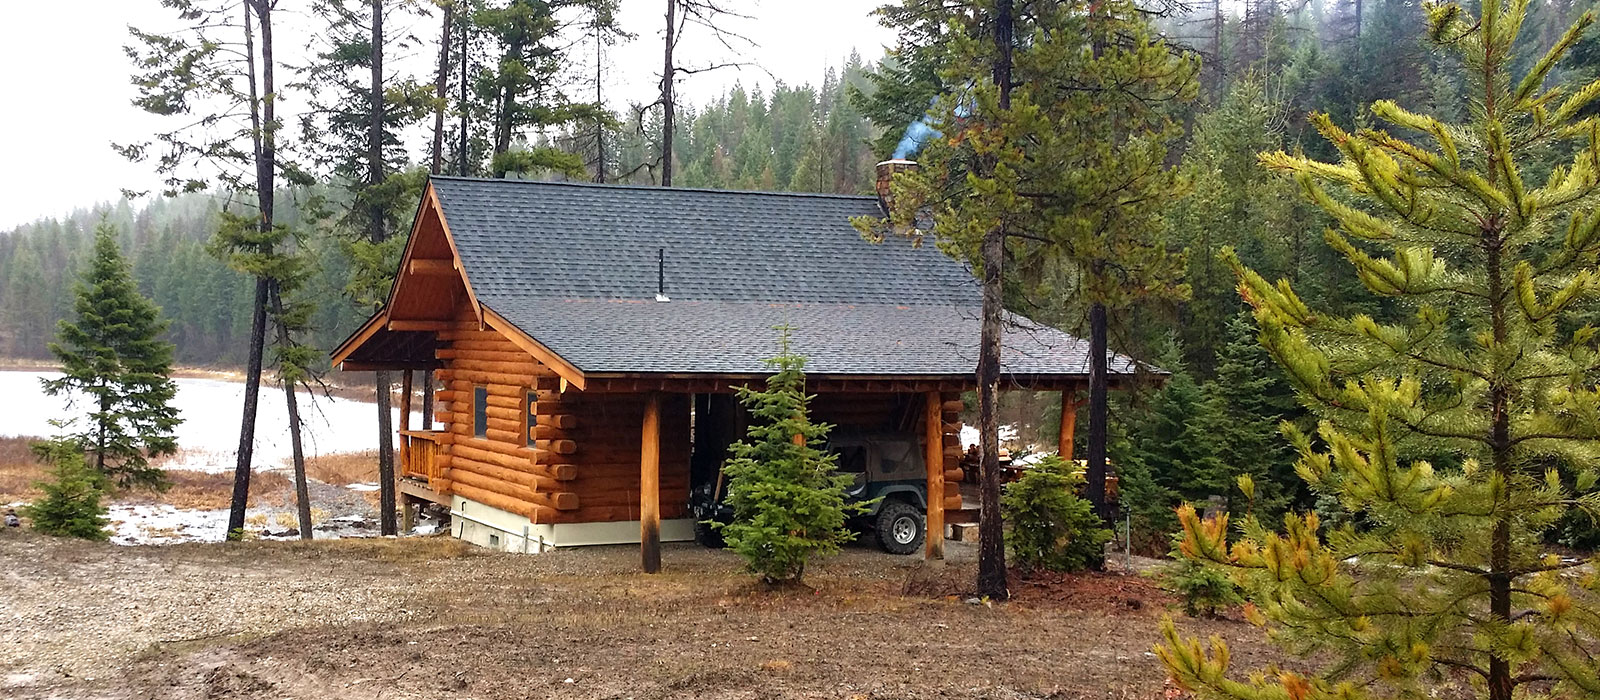 lodging cabins event wind ranch the cabin in gorge and for mountain venue dog montana rent